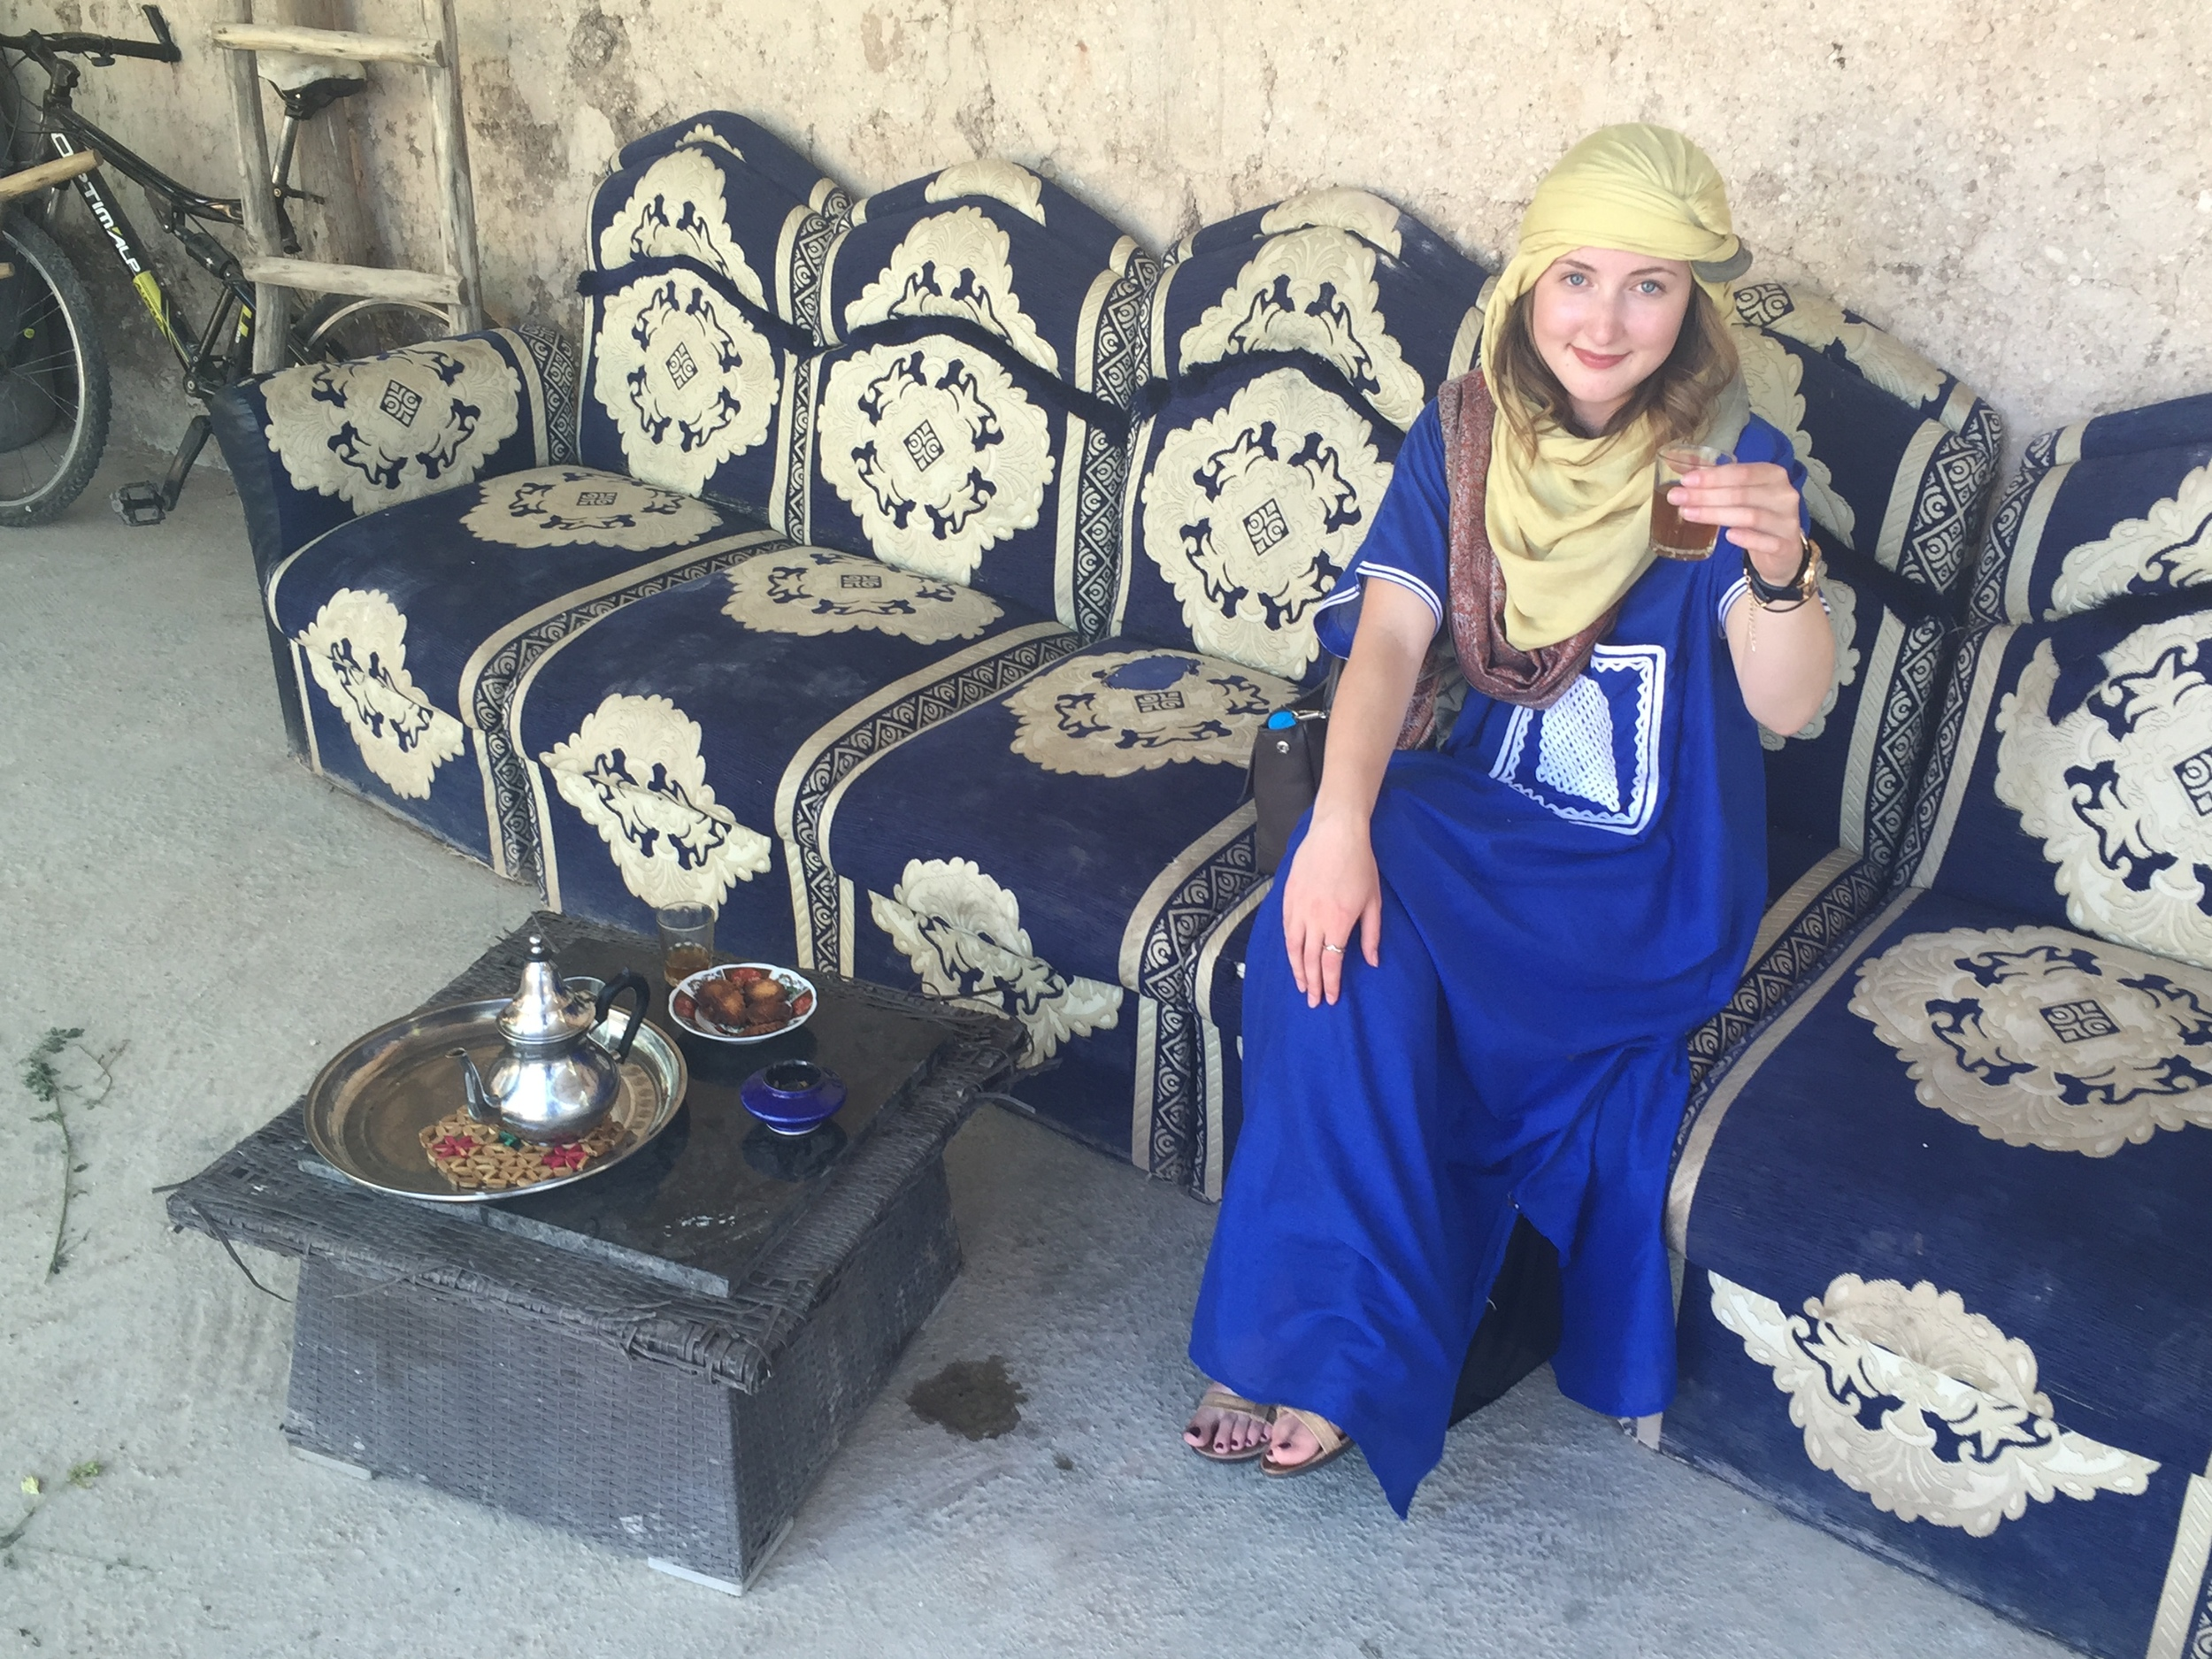 Cheers! I am drinking traditional Moroccan mint tea!